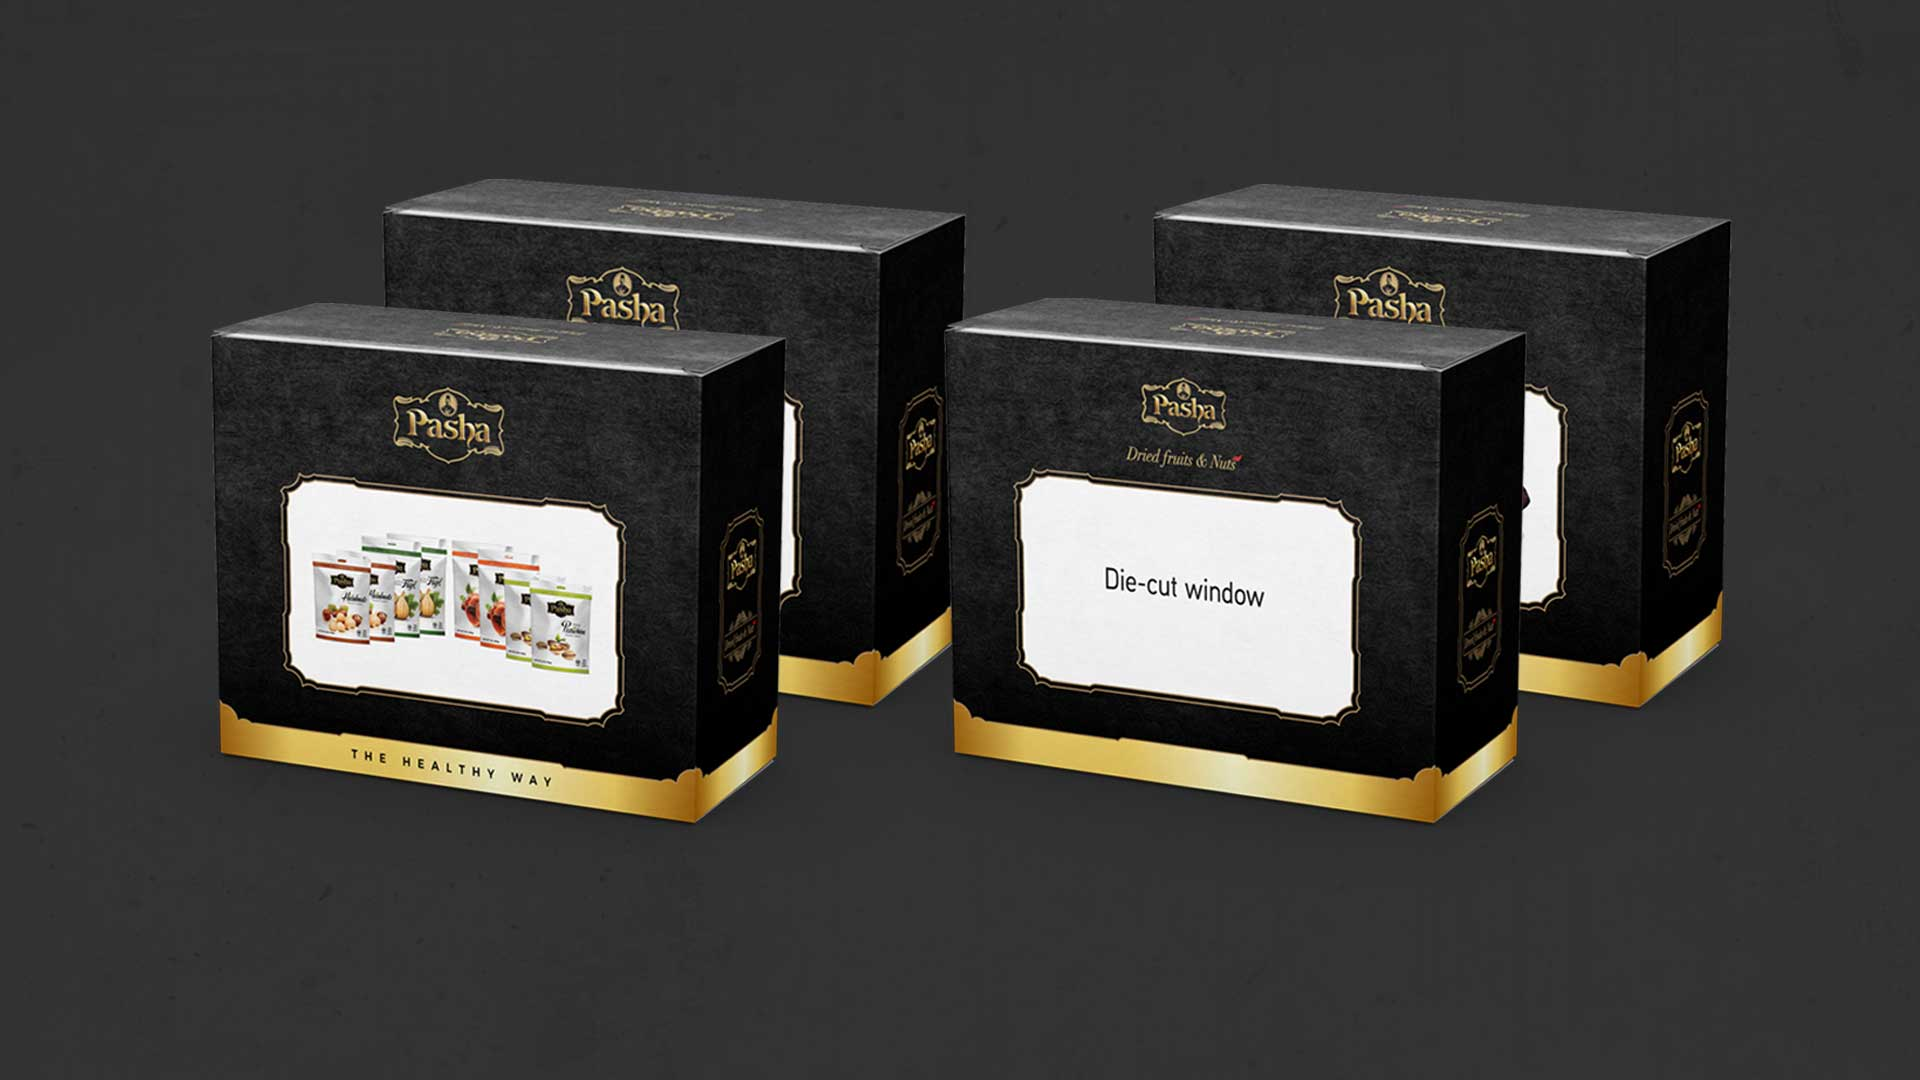 Four black and gold boxes showing detail of the front and back layout